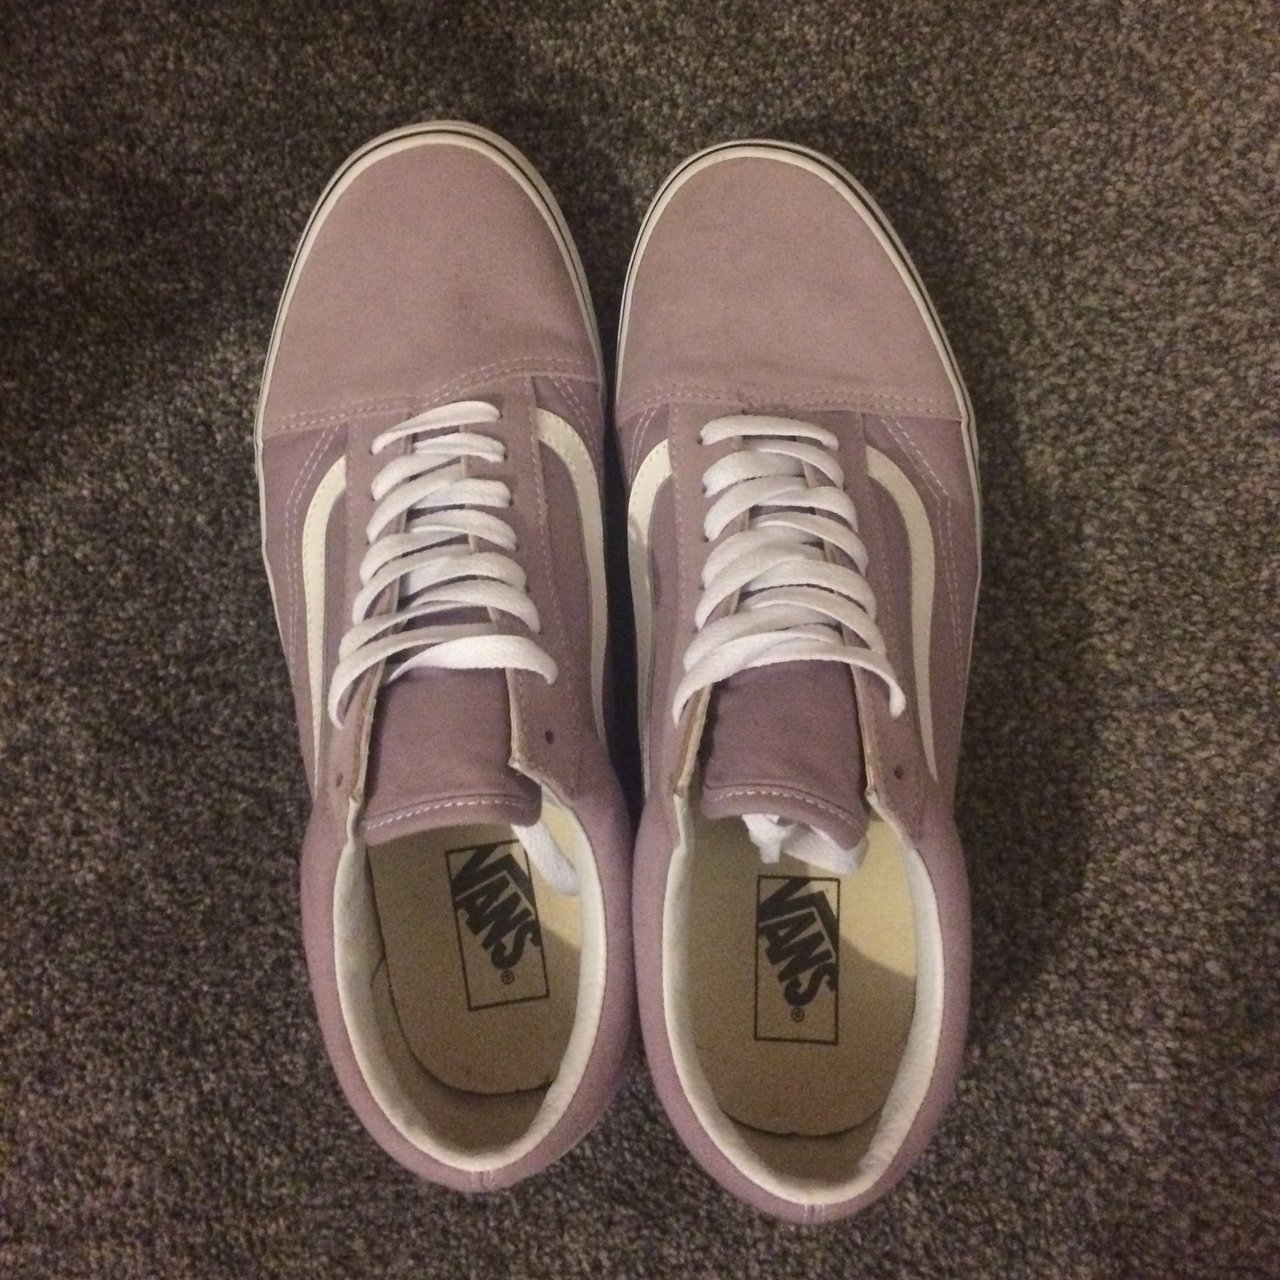 94fd55cfba4559 Light purple and white vans. Mens size 11. In great only - Depop